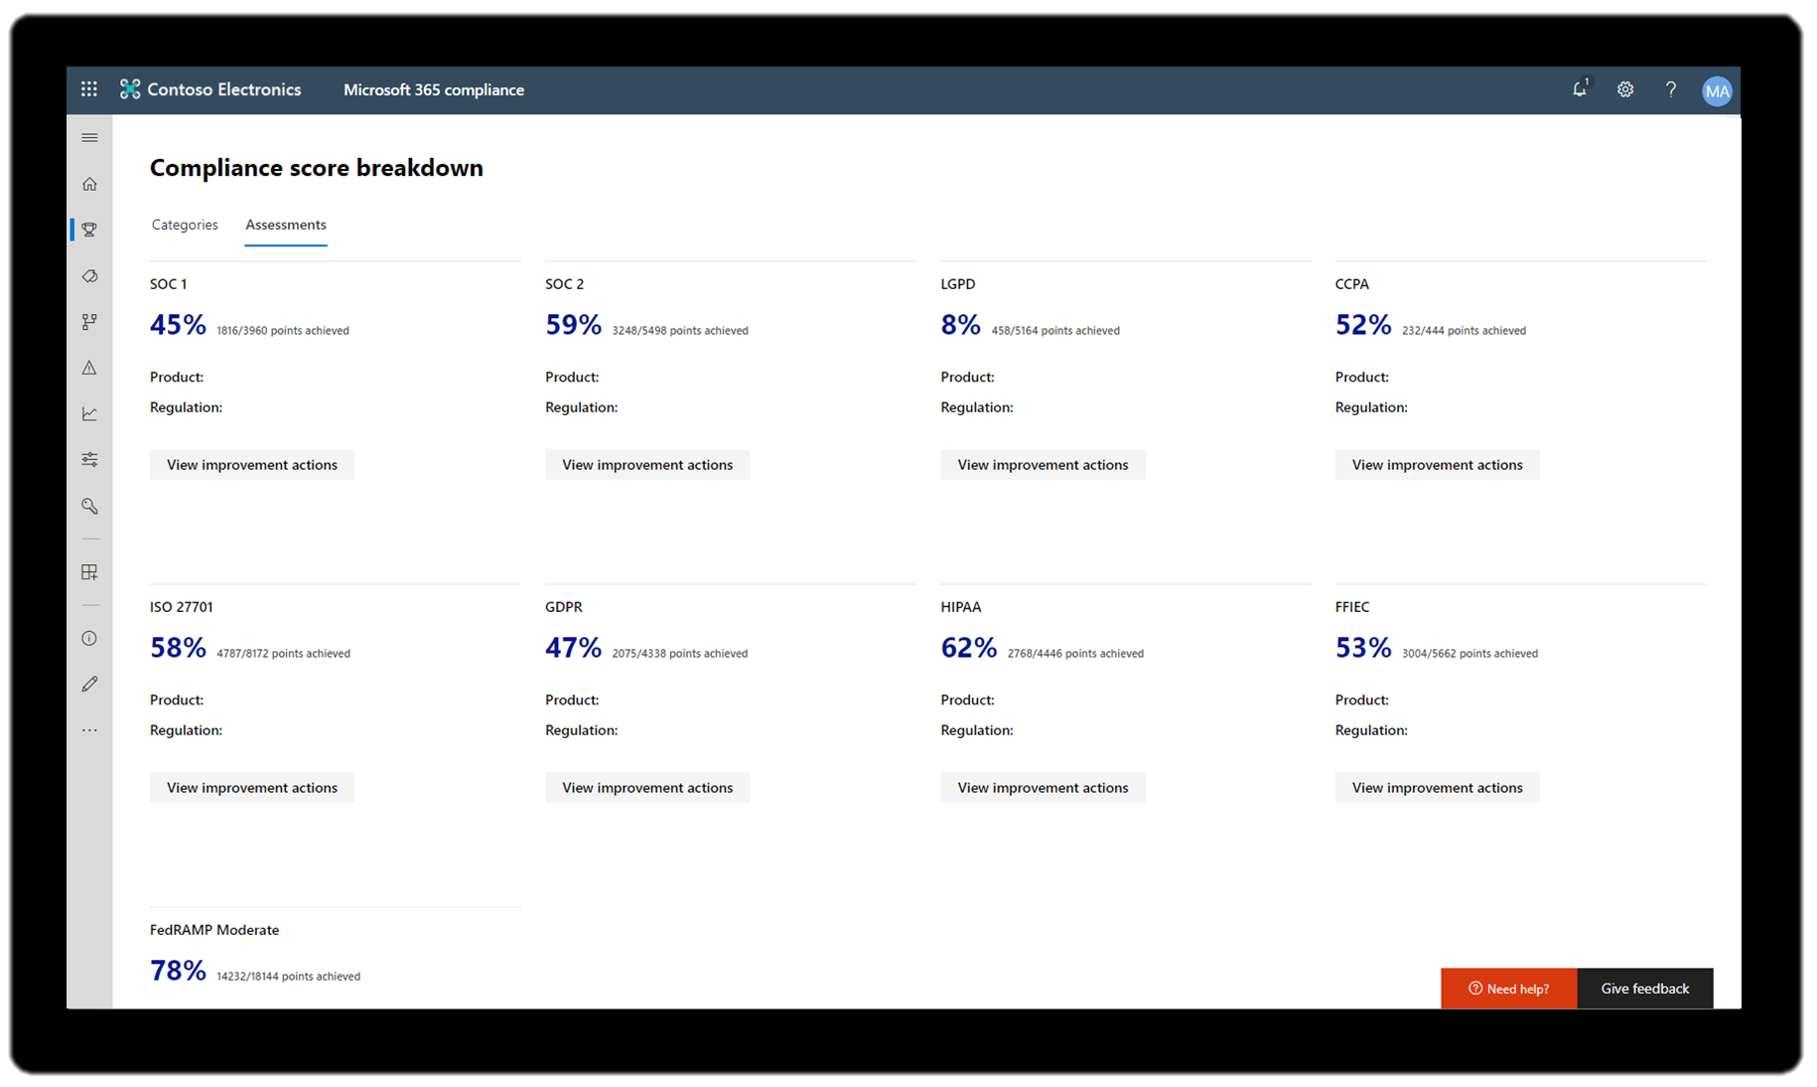 Image of a compliance score breakdown in the Microsoft 365 compliance center.